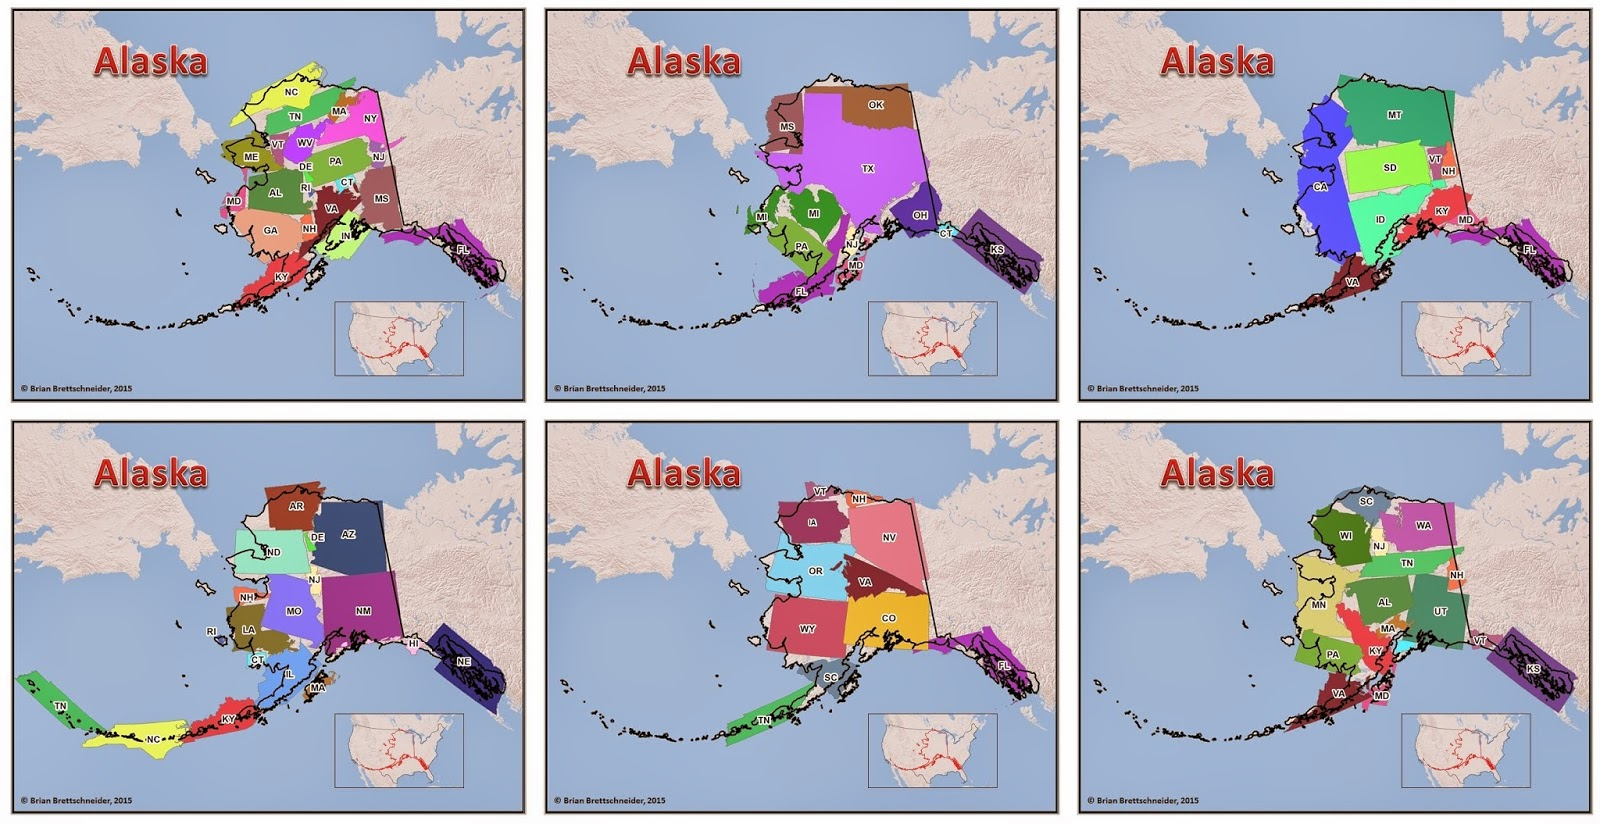 The size of Alaska compared to various other US states combined